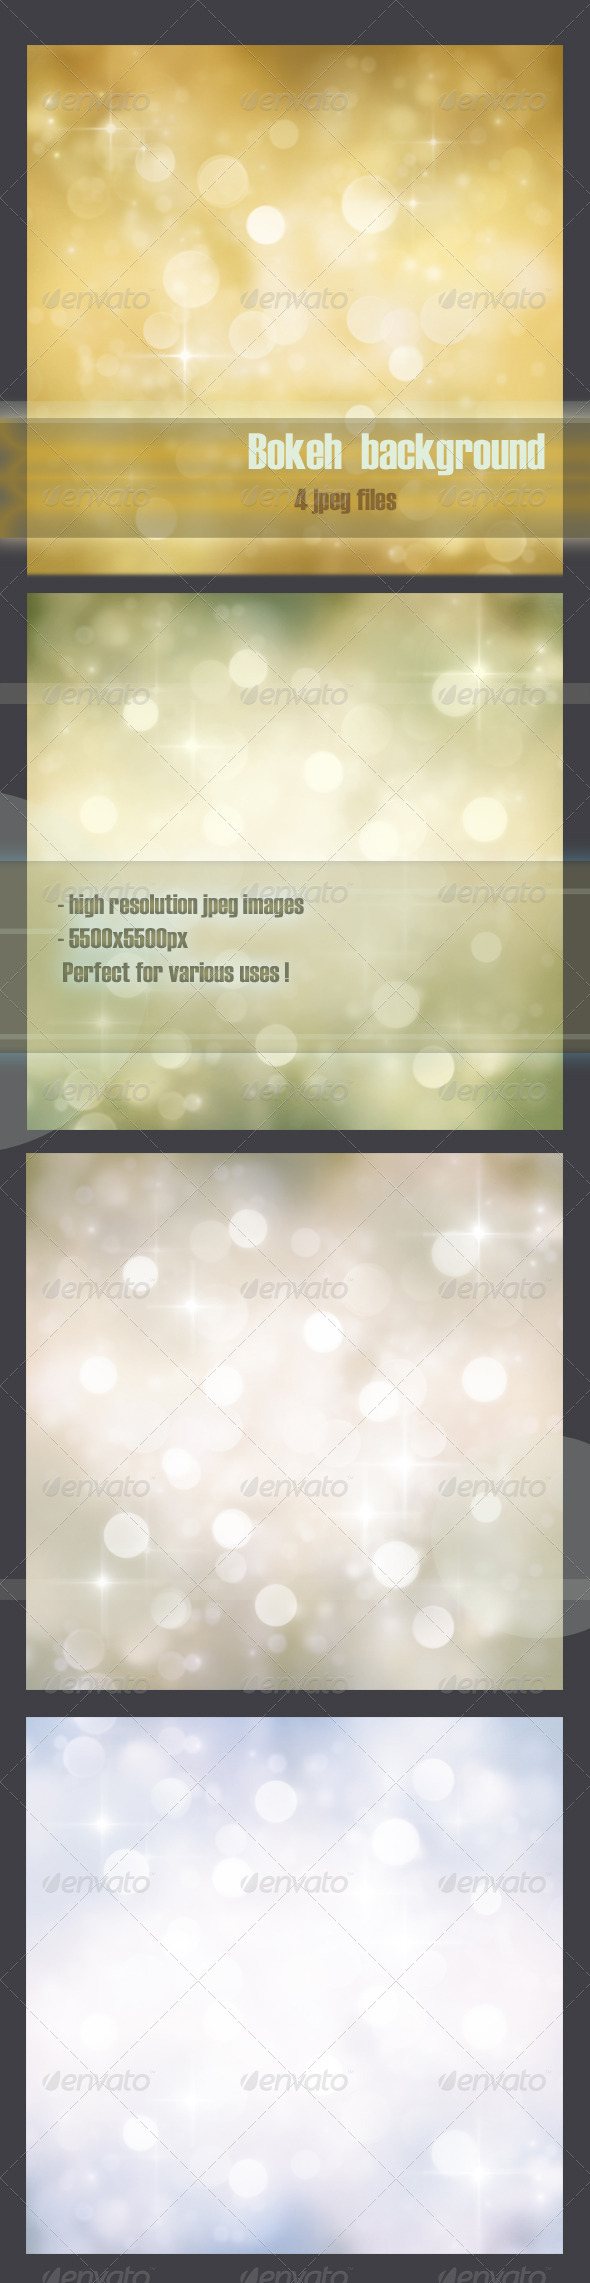 GraphicRiver Bokeh backgrounds 915857